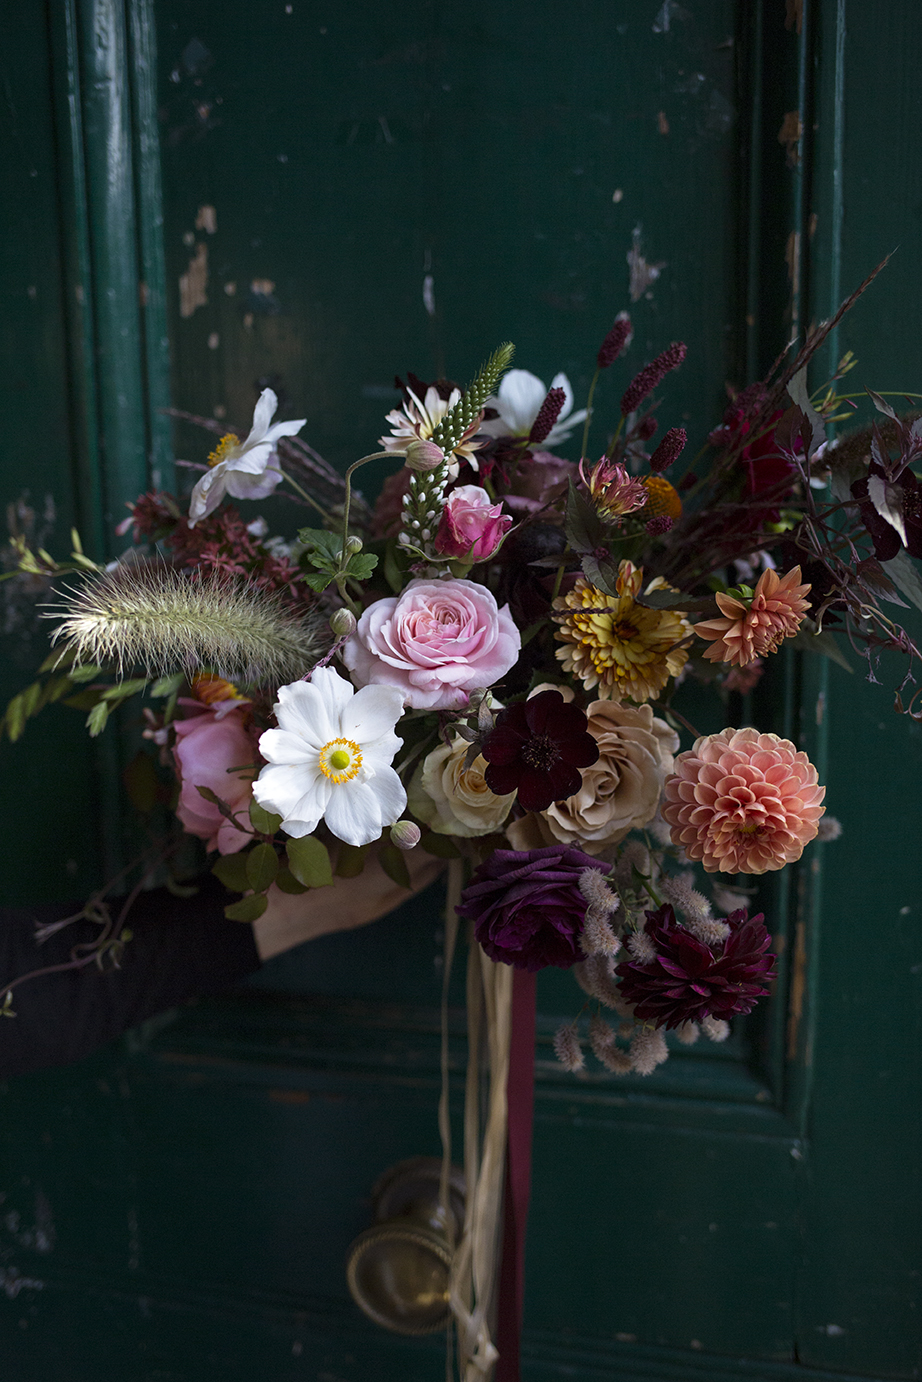 The bride's bouquet of autumn garden flowers and fluffy grasses, with velvety chocolate cosmos, rusty pom-pom dahlias and crisp white Japanese anemones